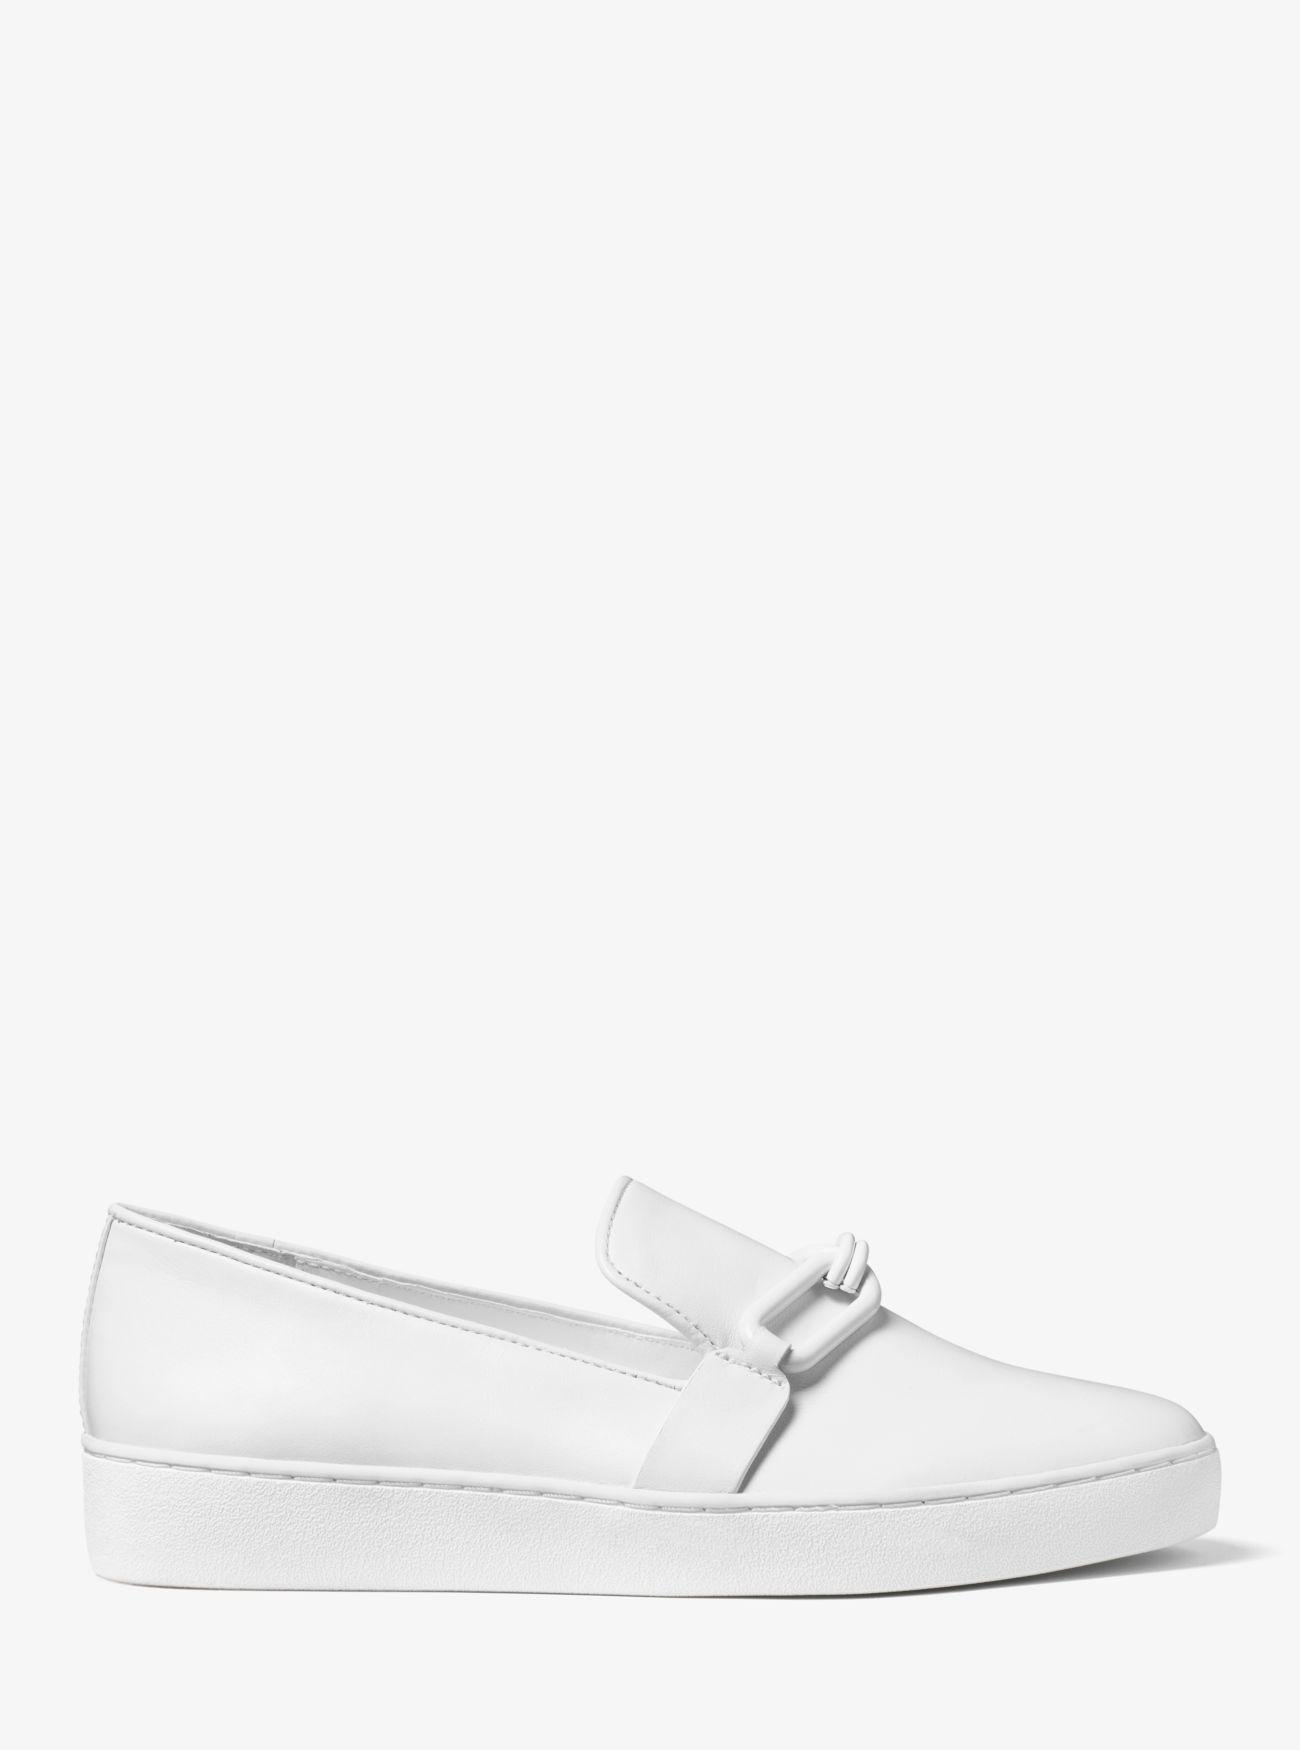 Michael Kors Collection Lennox Leather Slip-on Sneakers in White